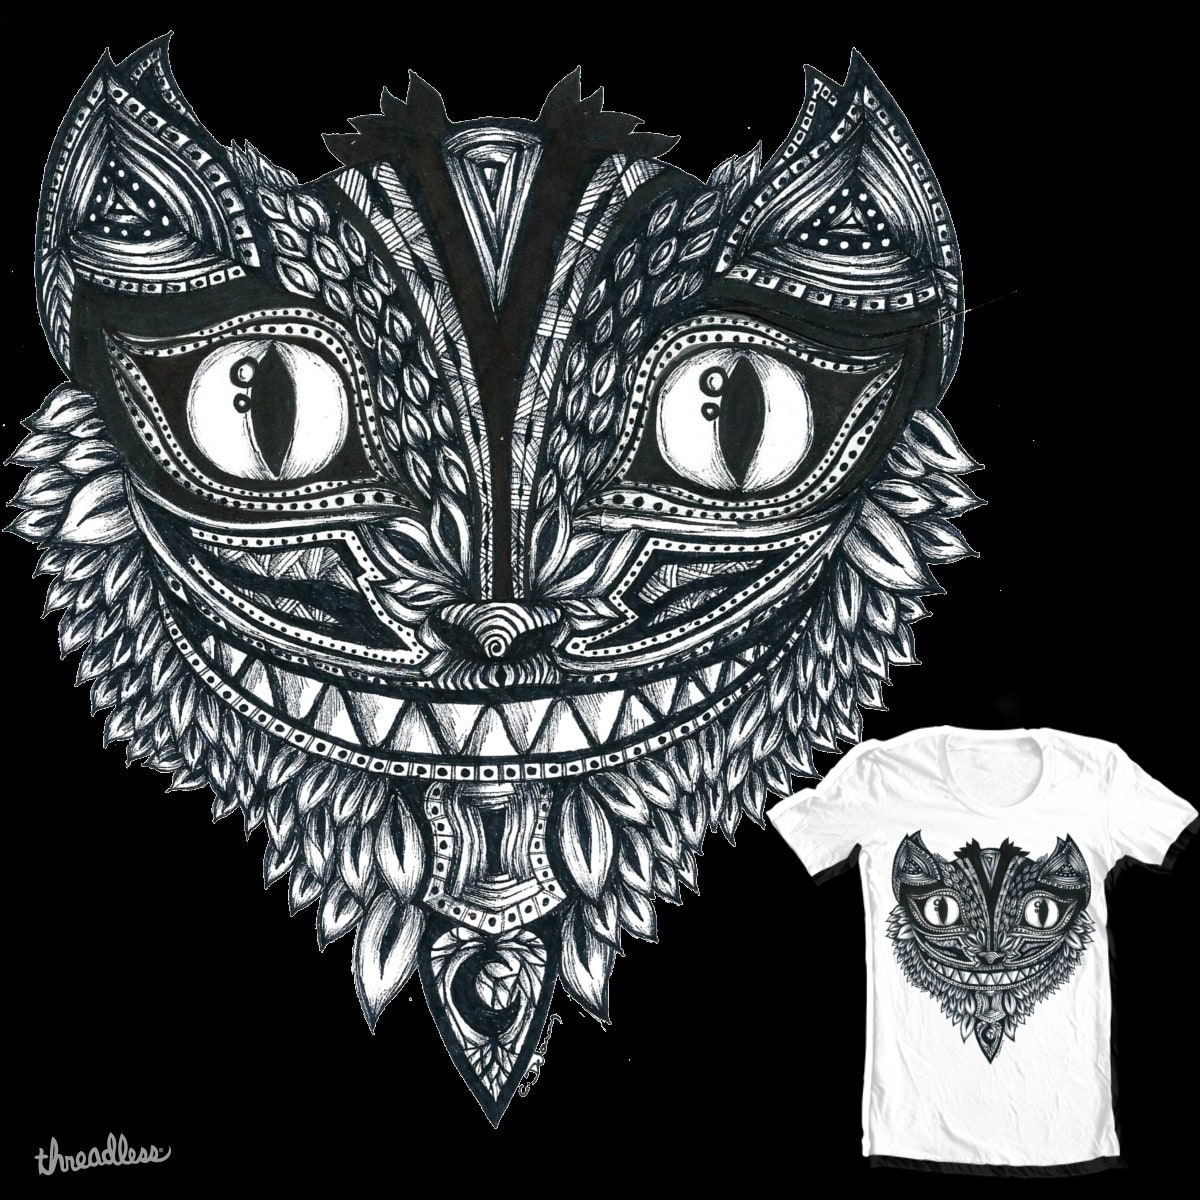 Grinning Through The Leaves by sparki111 on Threadless